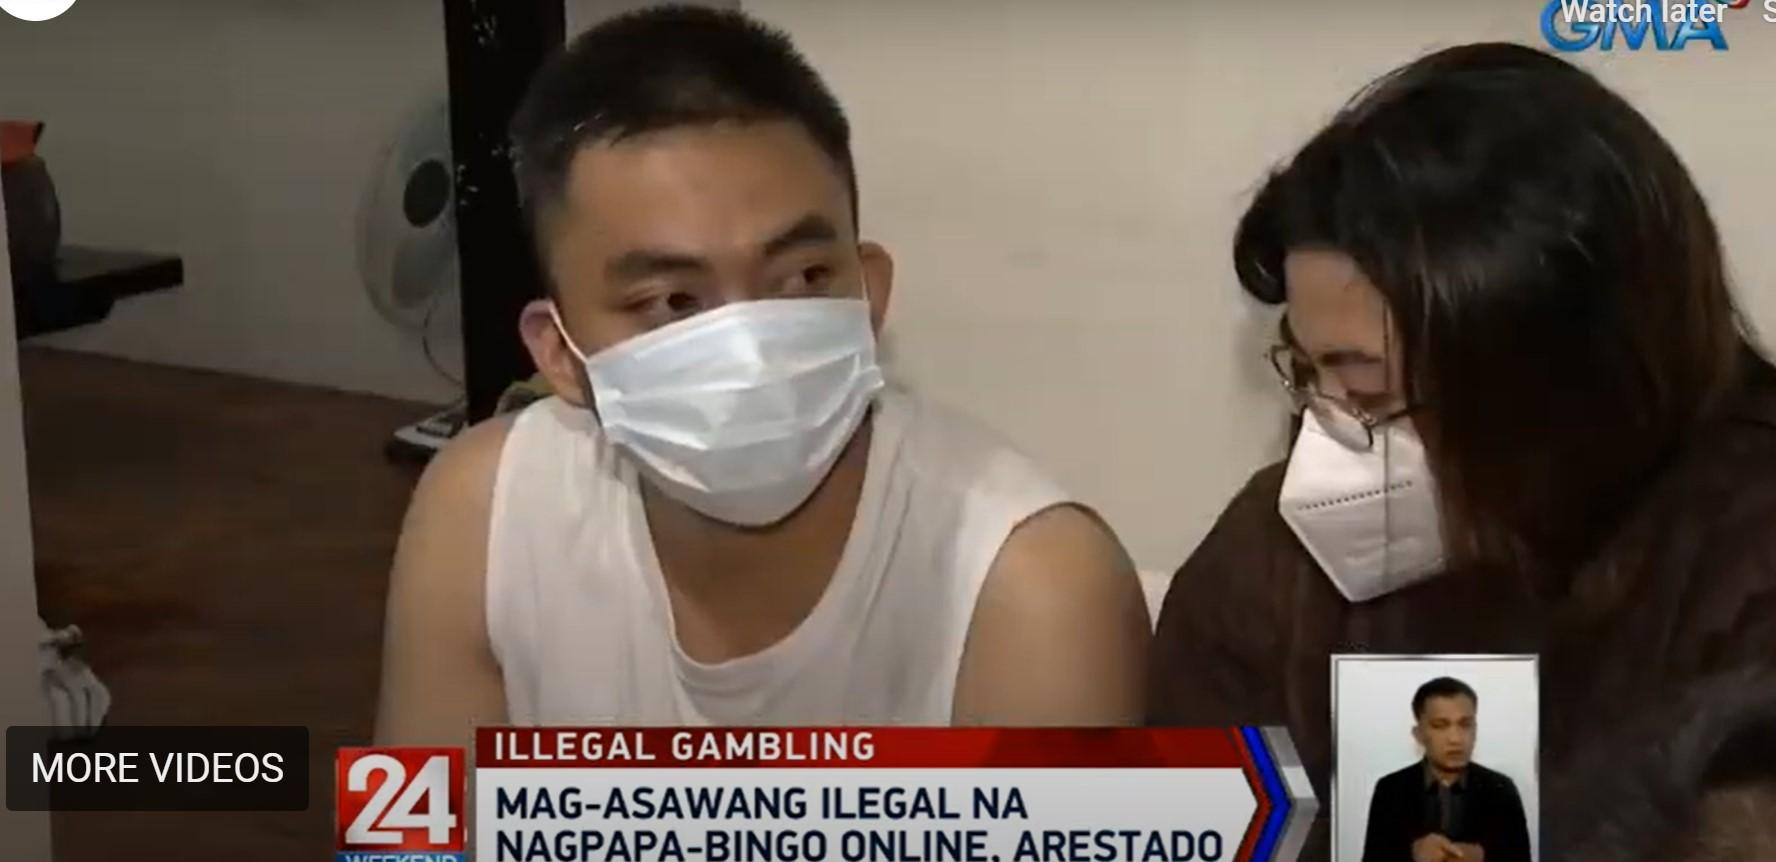 Couple in QC nabbed for retaining unlawful online bingo